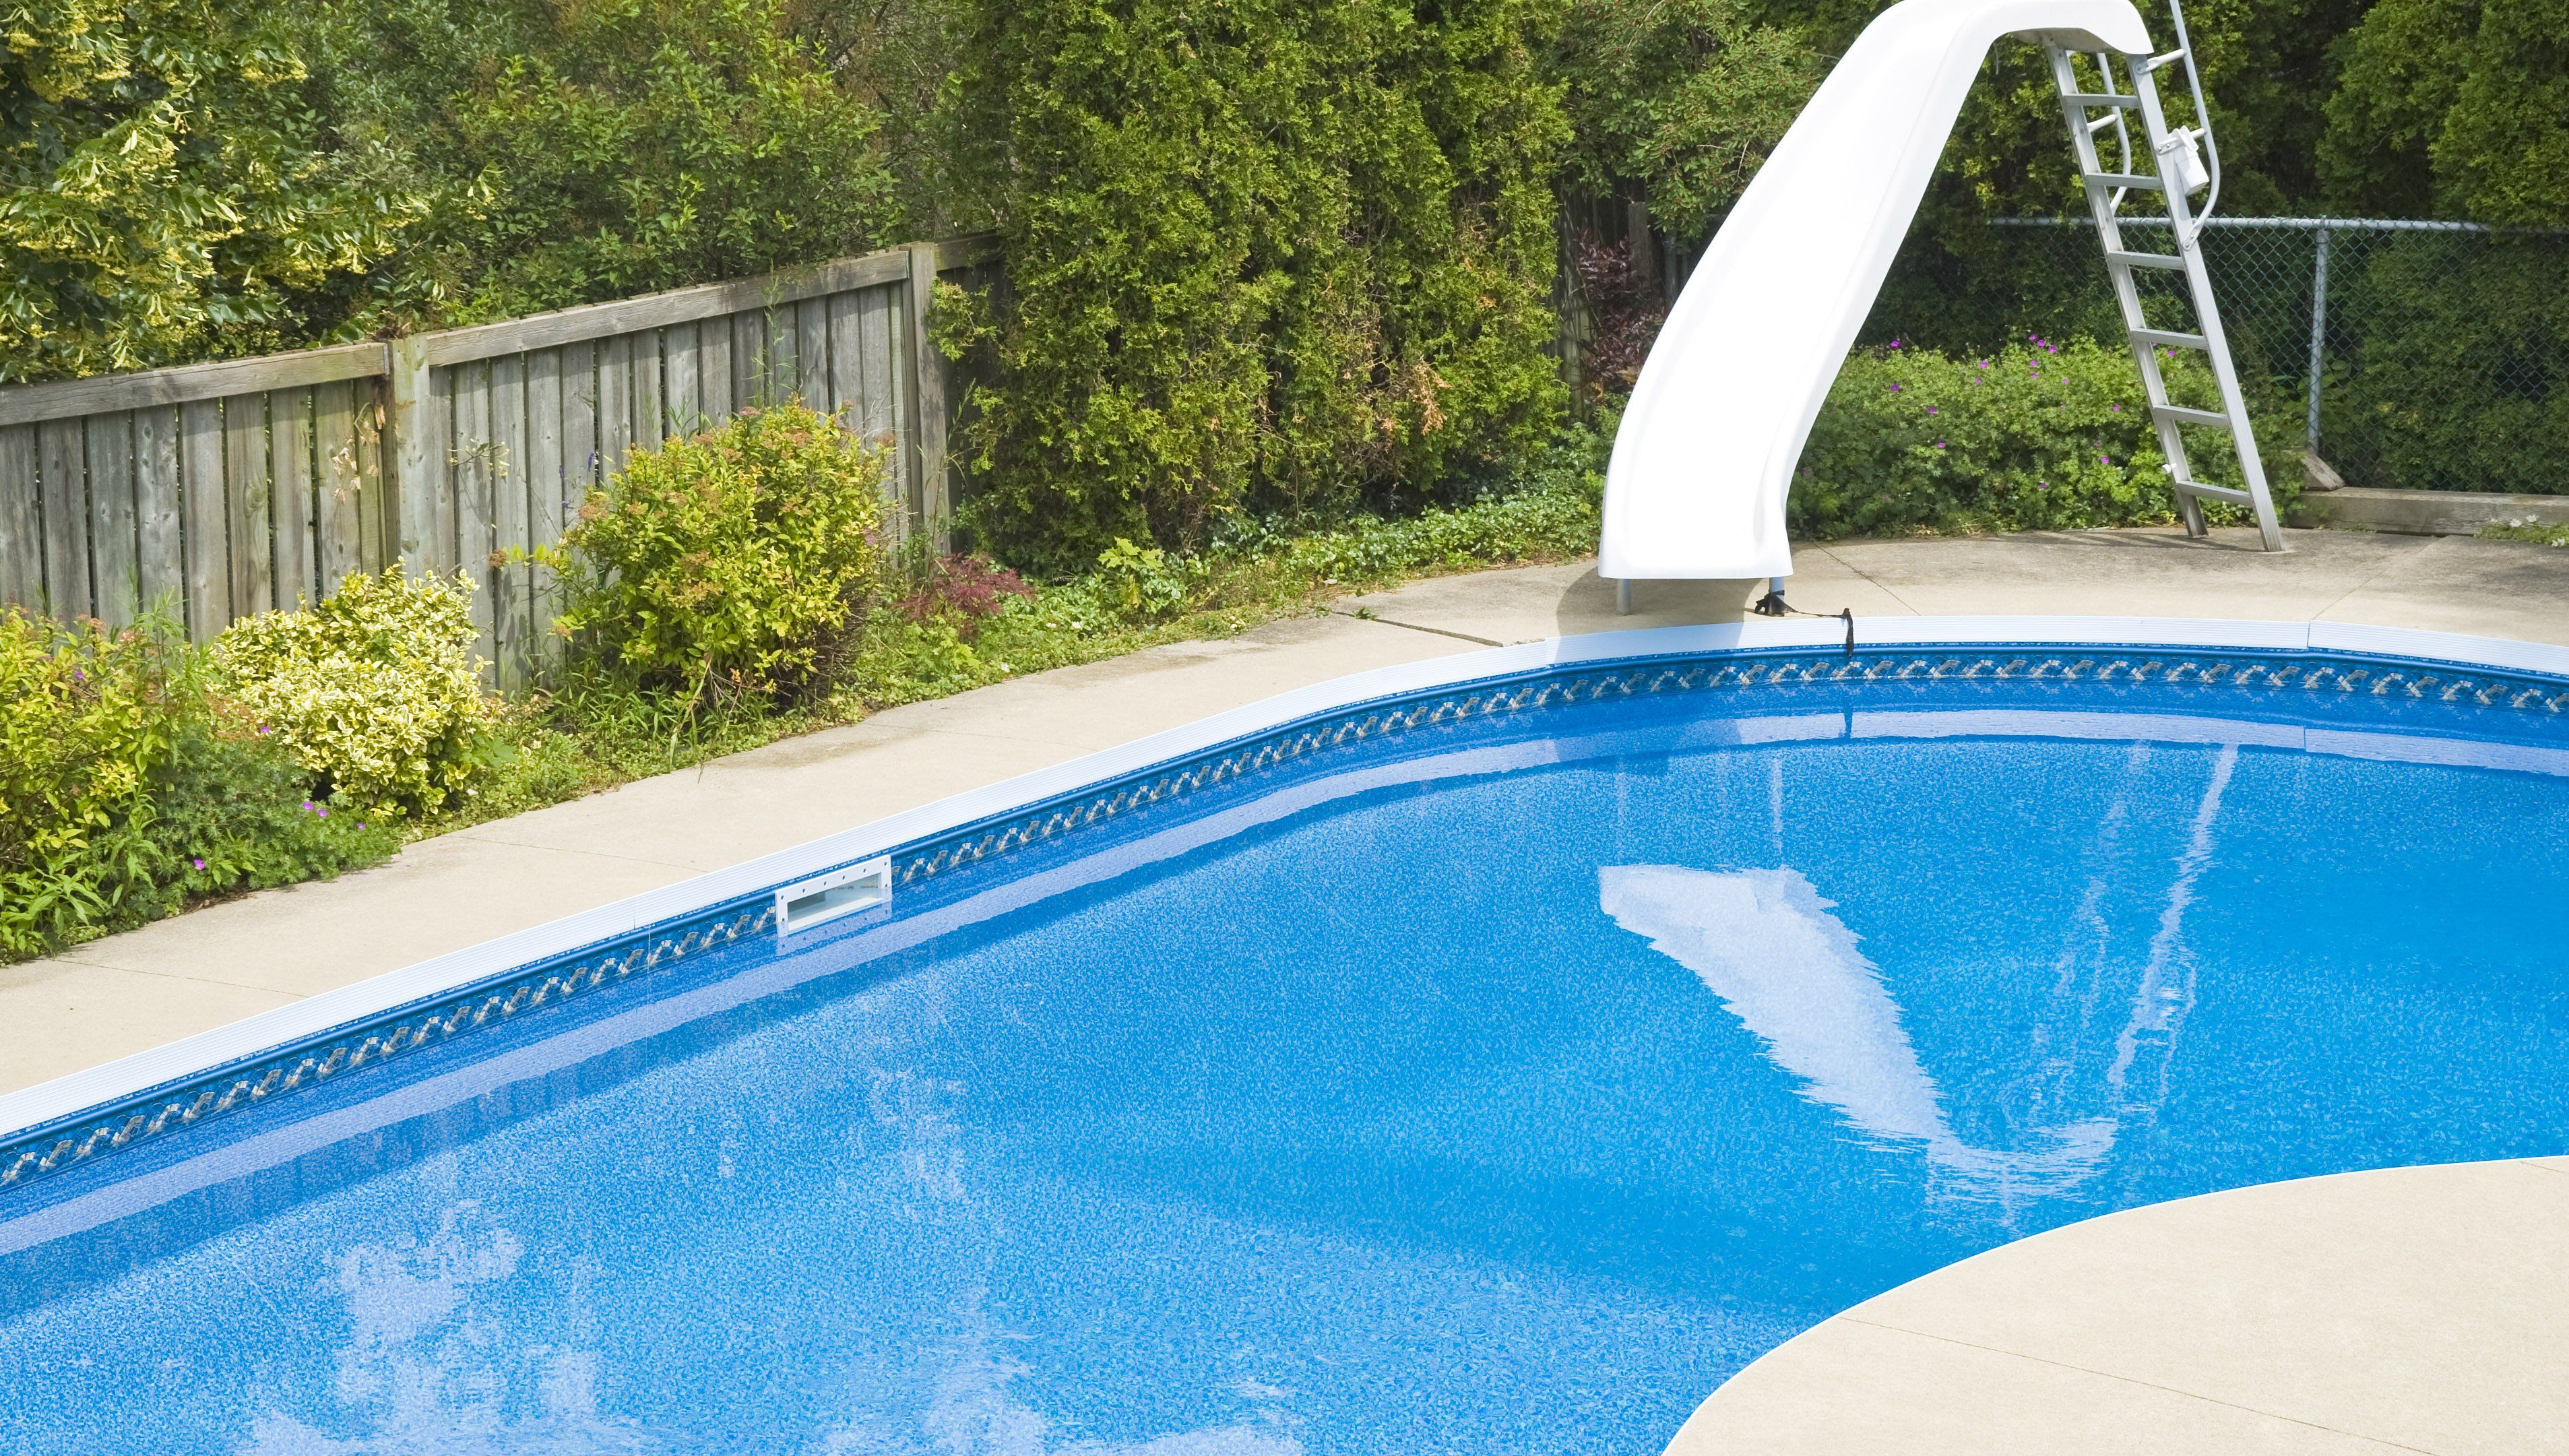 Tired Of Looking At Those Stains On Your Pool Liner Here S How To Get Rid Of Them In 2020 Pool Liners Pool Swimming Pools